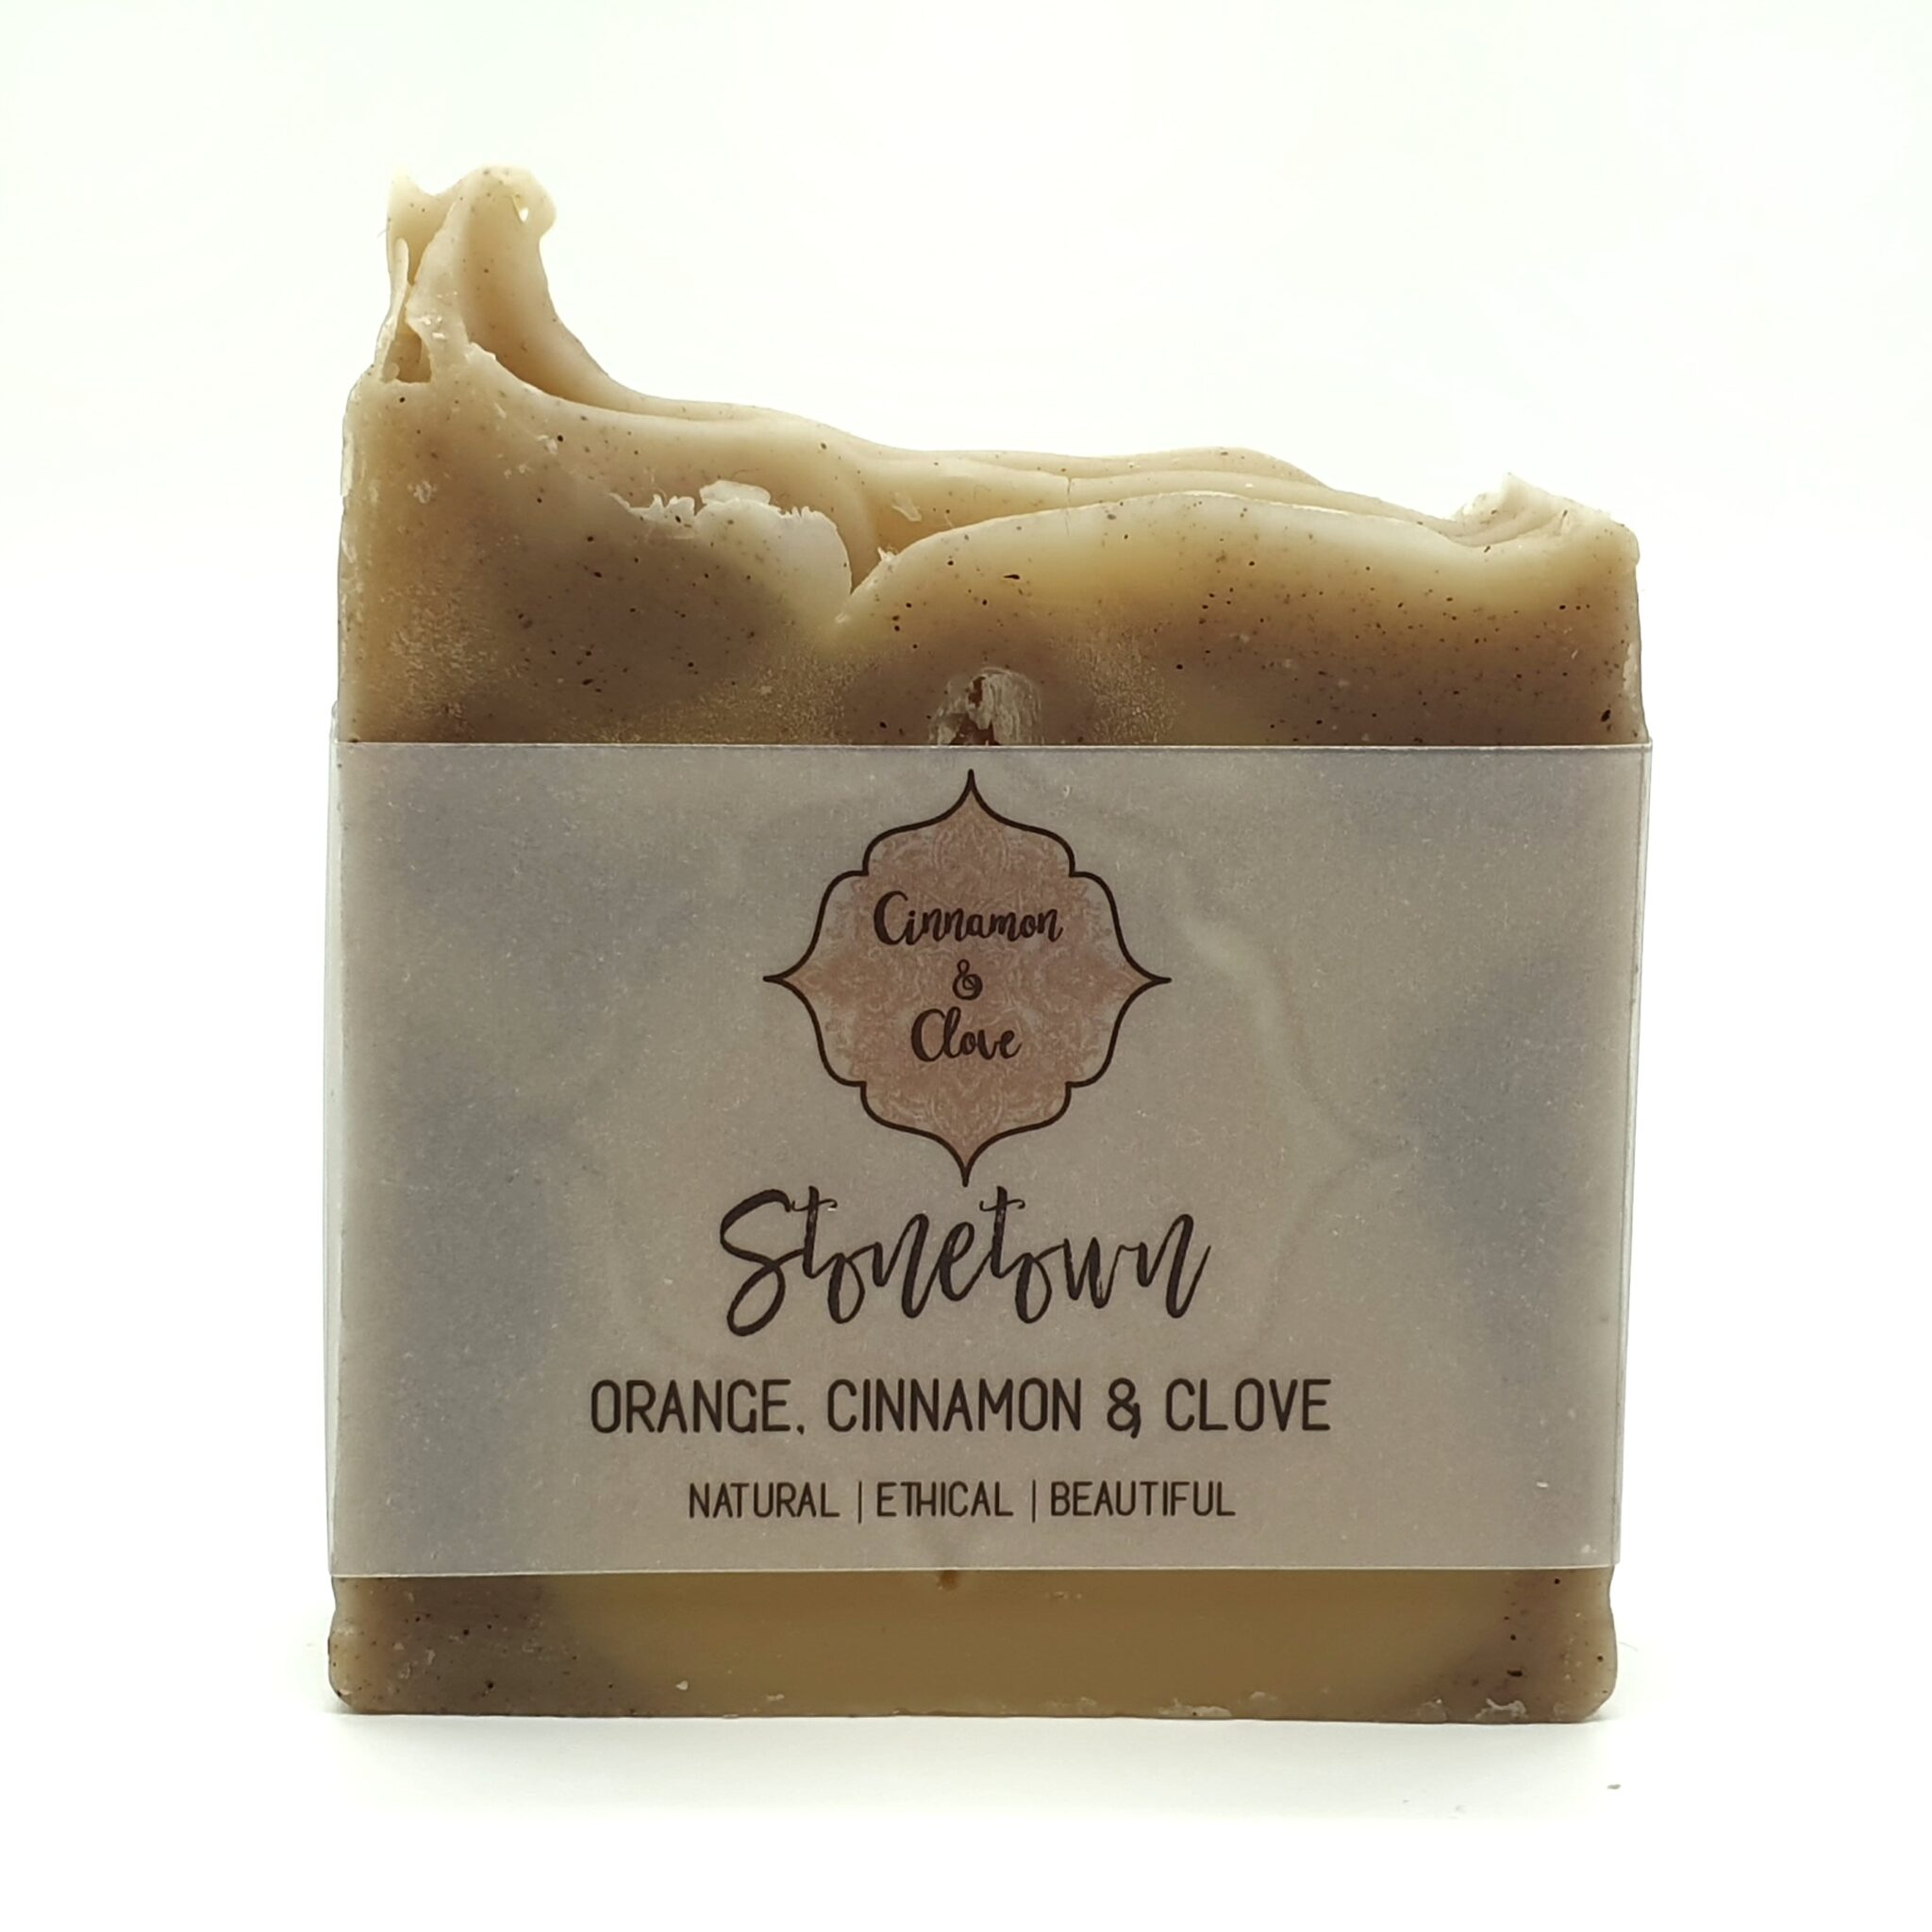 Stonetown – Handcrafted All Natural Artisan Soap By Cinnamon And Clove (Fitzroy)